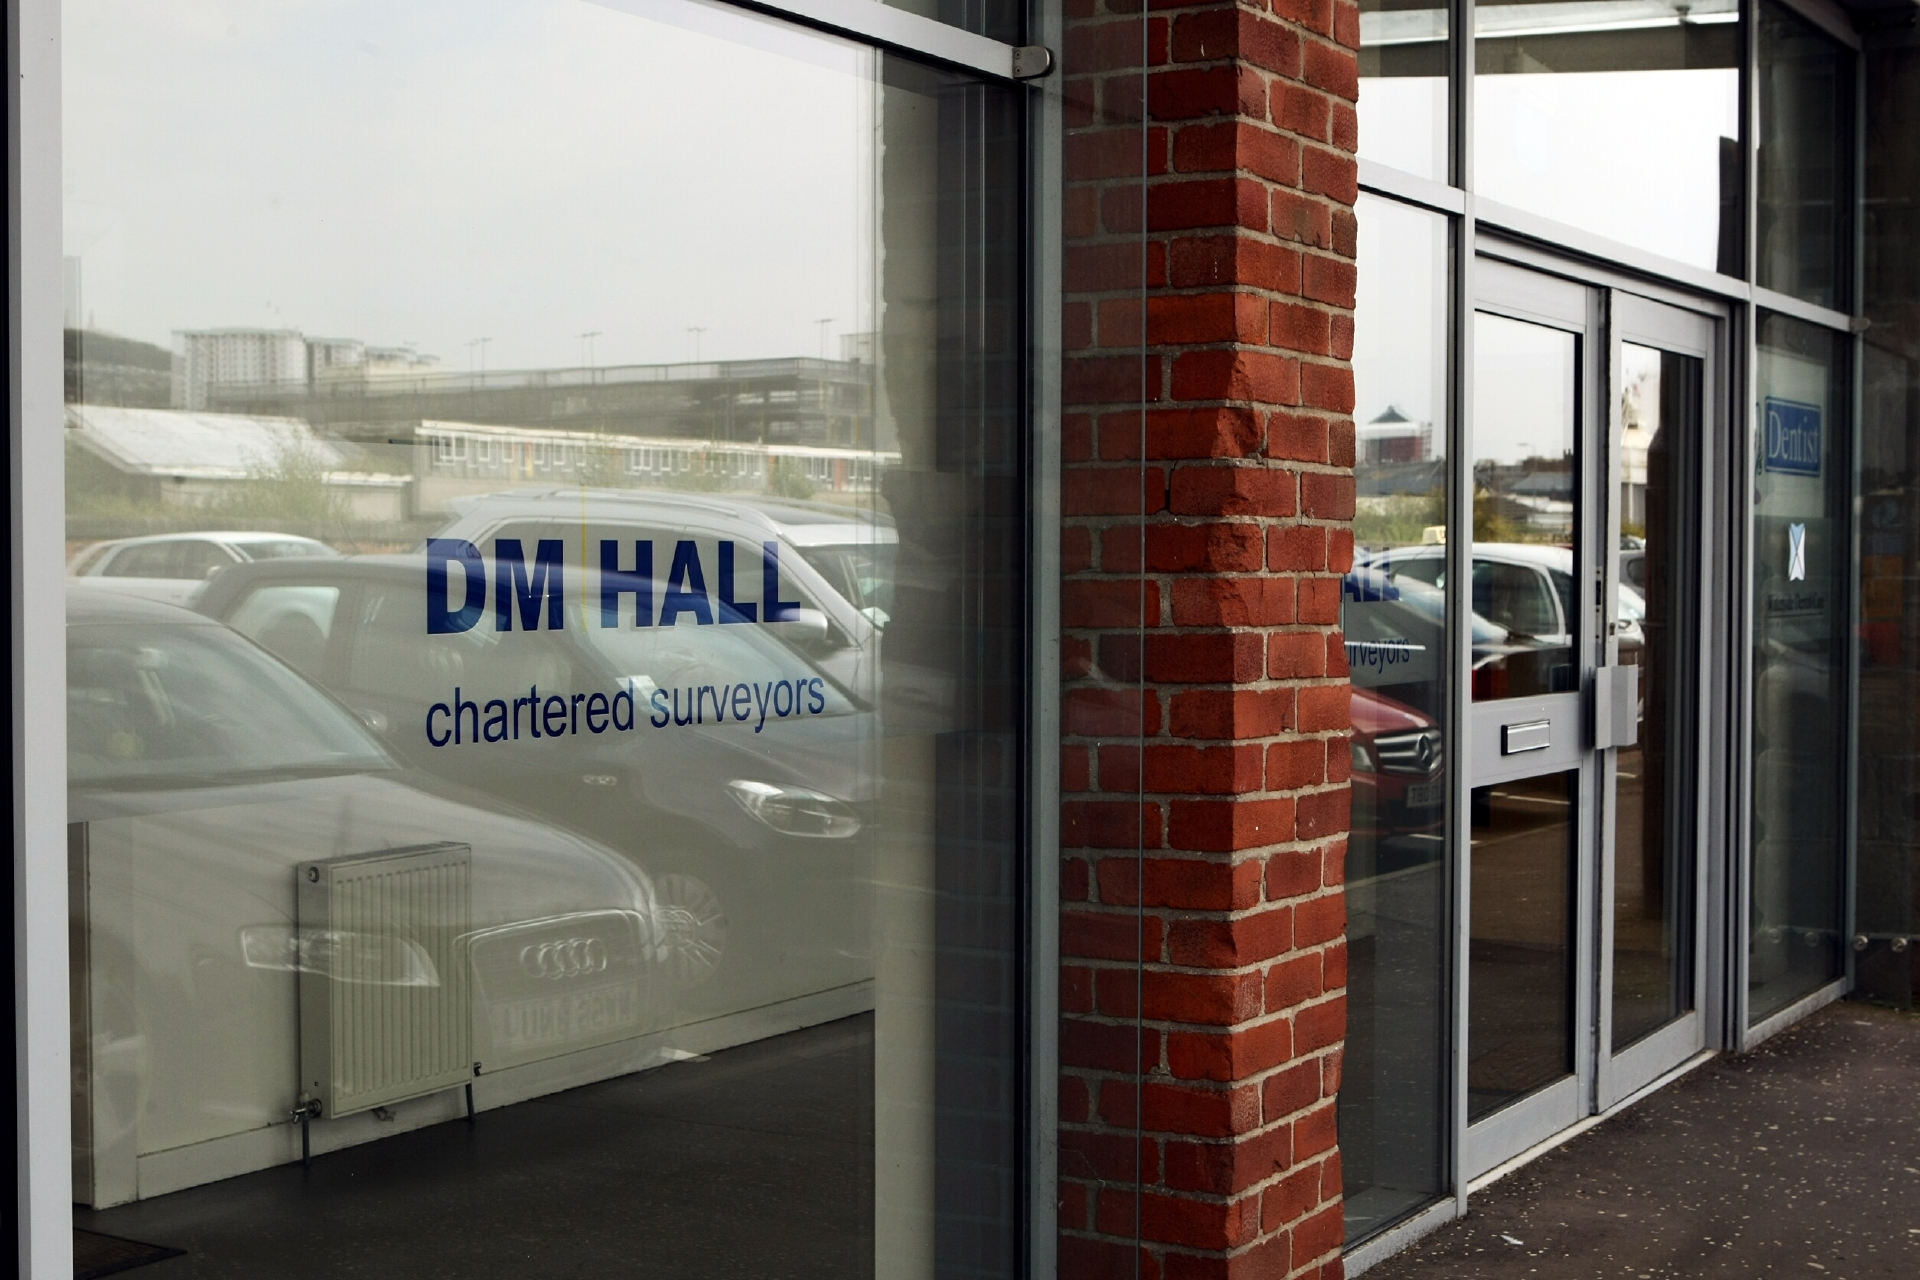 COURIER, DOUGIE NICOLSON, 03/09/14, NEWS. FOR GRAHAM HUBAND, BUSINESS SECTION. Pic shows the DM Hall premises at City Quay in Dundee today, Wednesday 3rd September 2014.